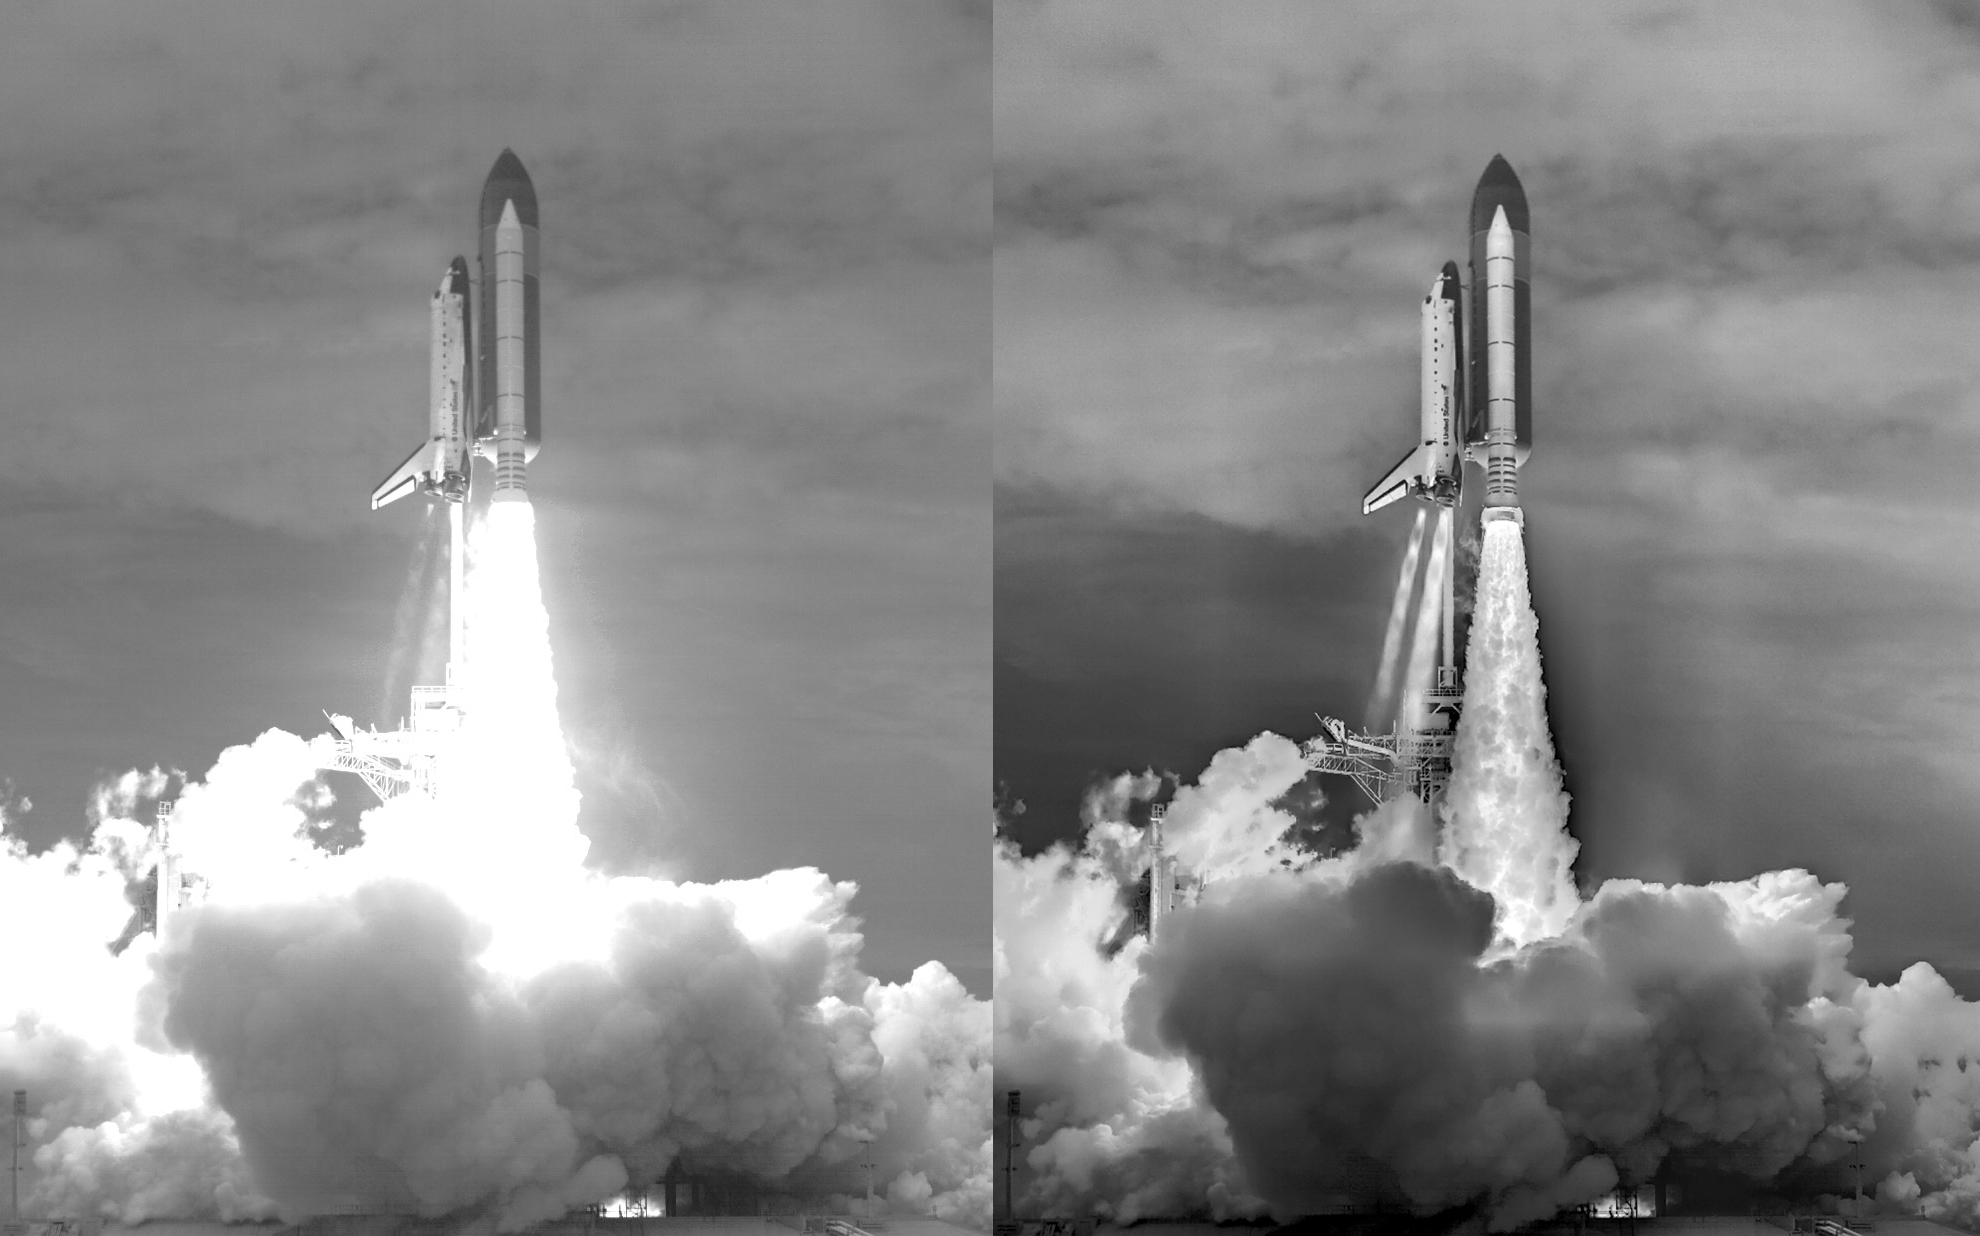 Six images that went into a final composite image for the launch of STS-135. The Space Shuttle's engine jets are primarily visible in the image taken by a thermal infrared camera. A side-by-side comparison showing a one-camera view of the launch (left) with the six-camera composited view (right). Image credit: NASA / Louise Walker / J.T. Heineck